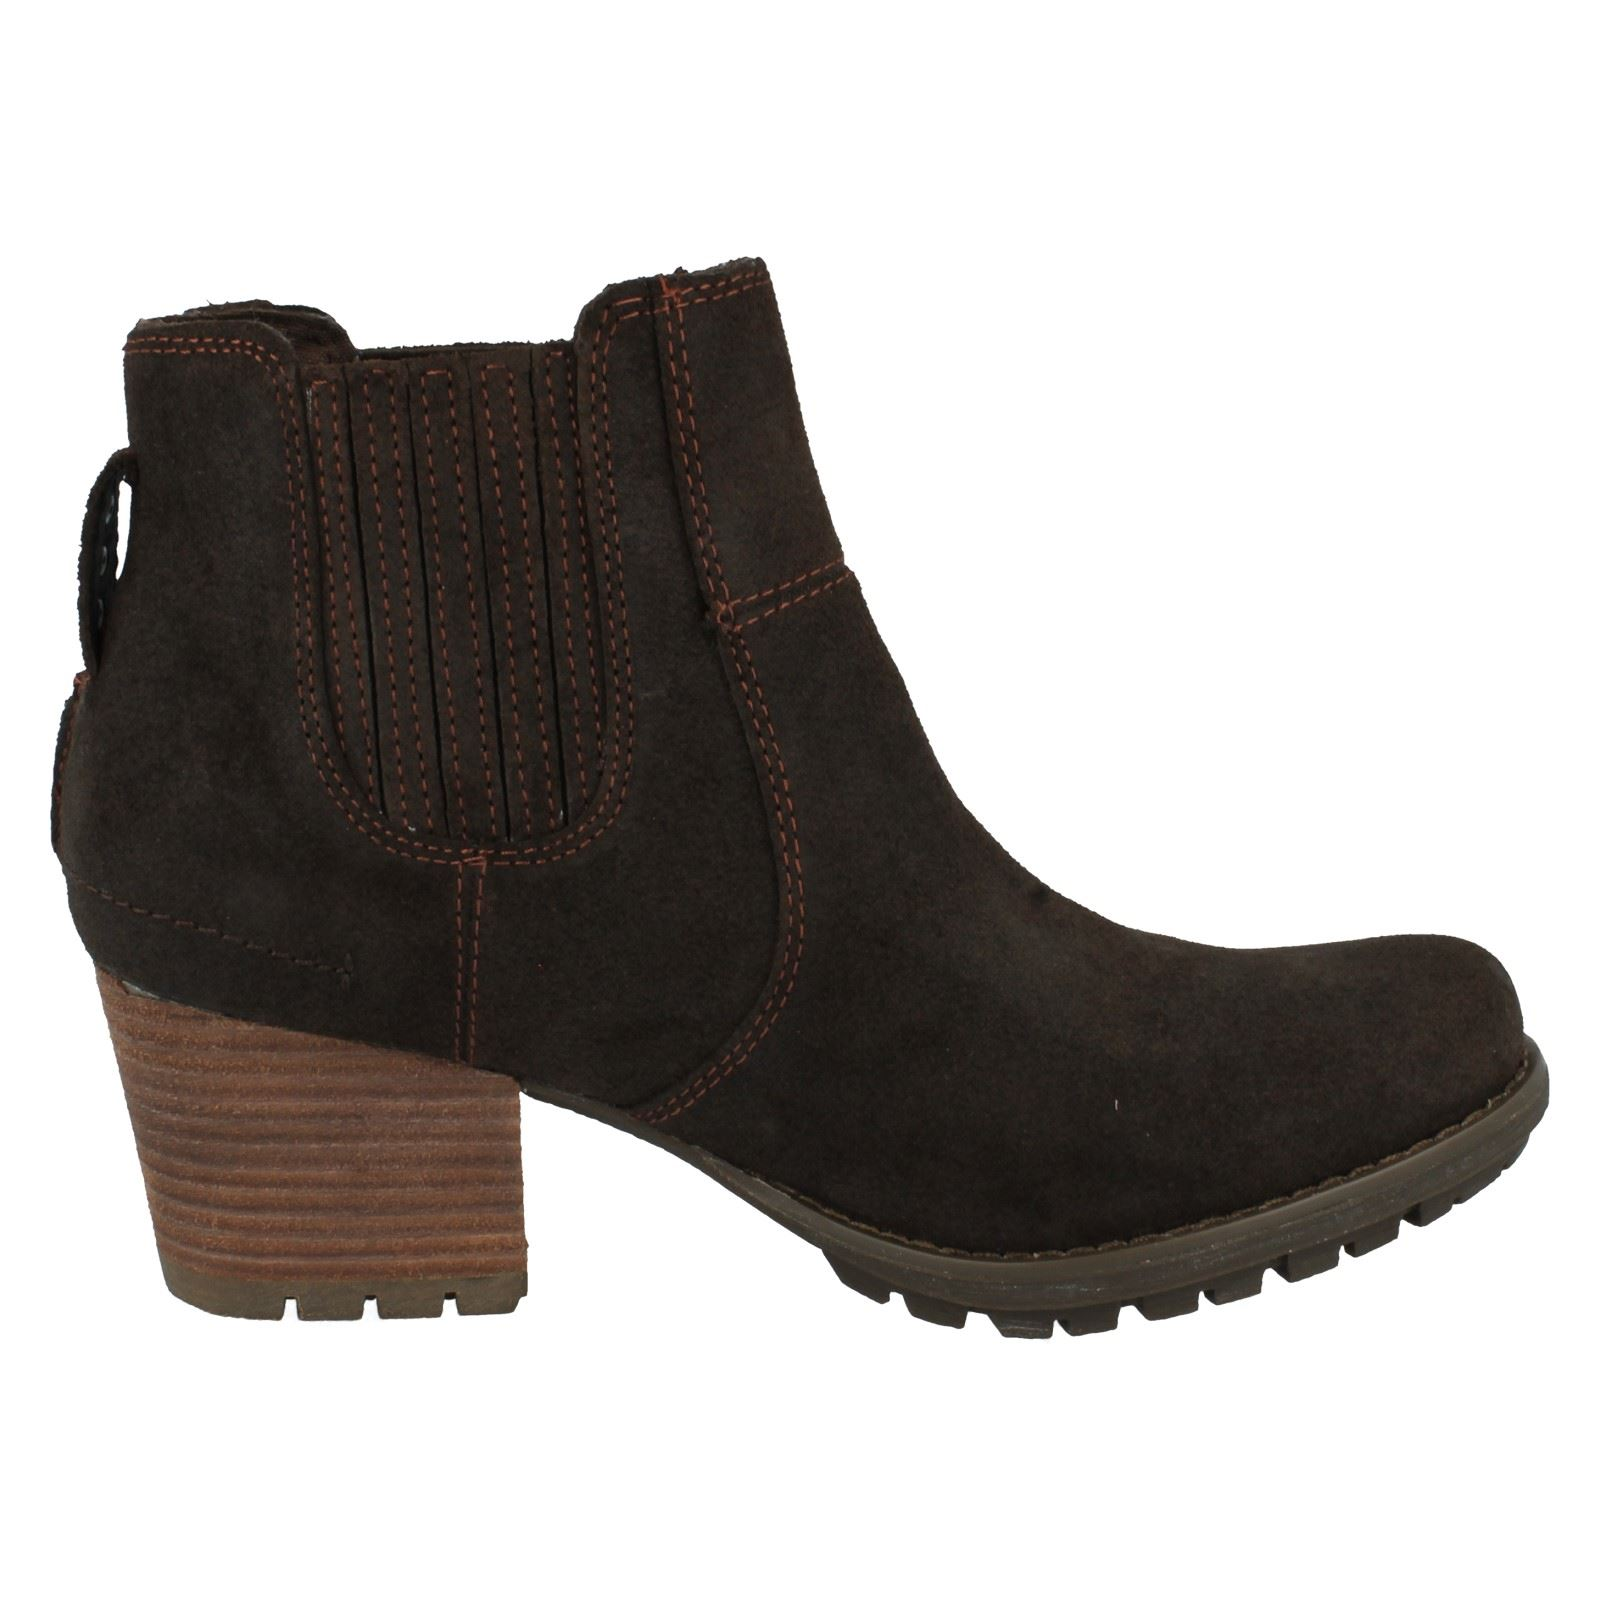 Popular The Caterpillar Alexi Boots Feature A Suede Upper With A Round Toe  The ManMade Outsole Lends Lasting Traction And Wear The Caterpillar Alexi Boots Feature A Suede Upper With A Round Toe  The ManMade Outsole Lends Lasting